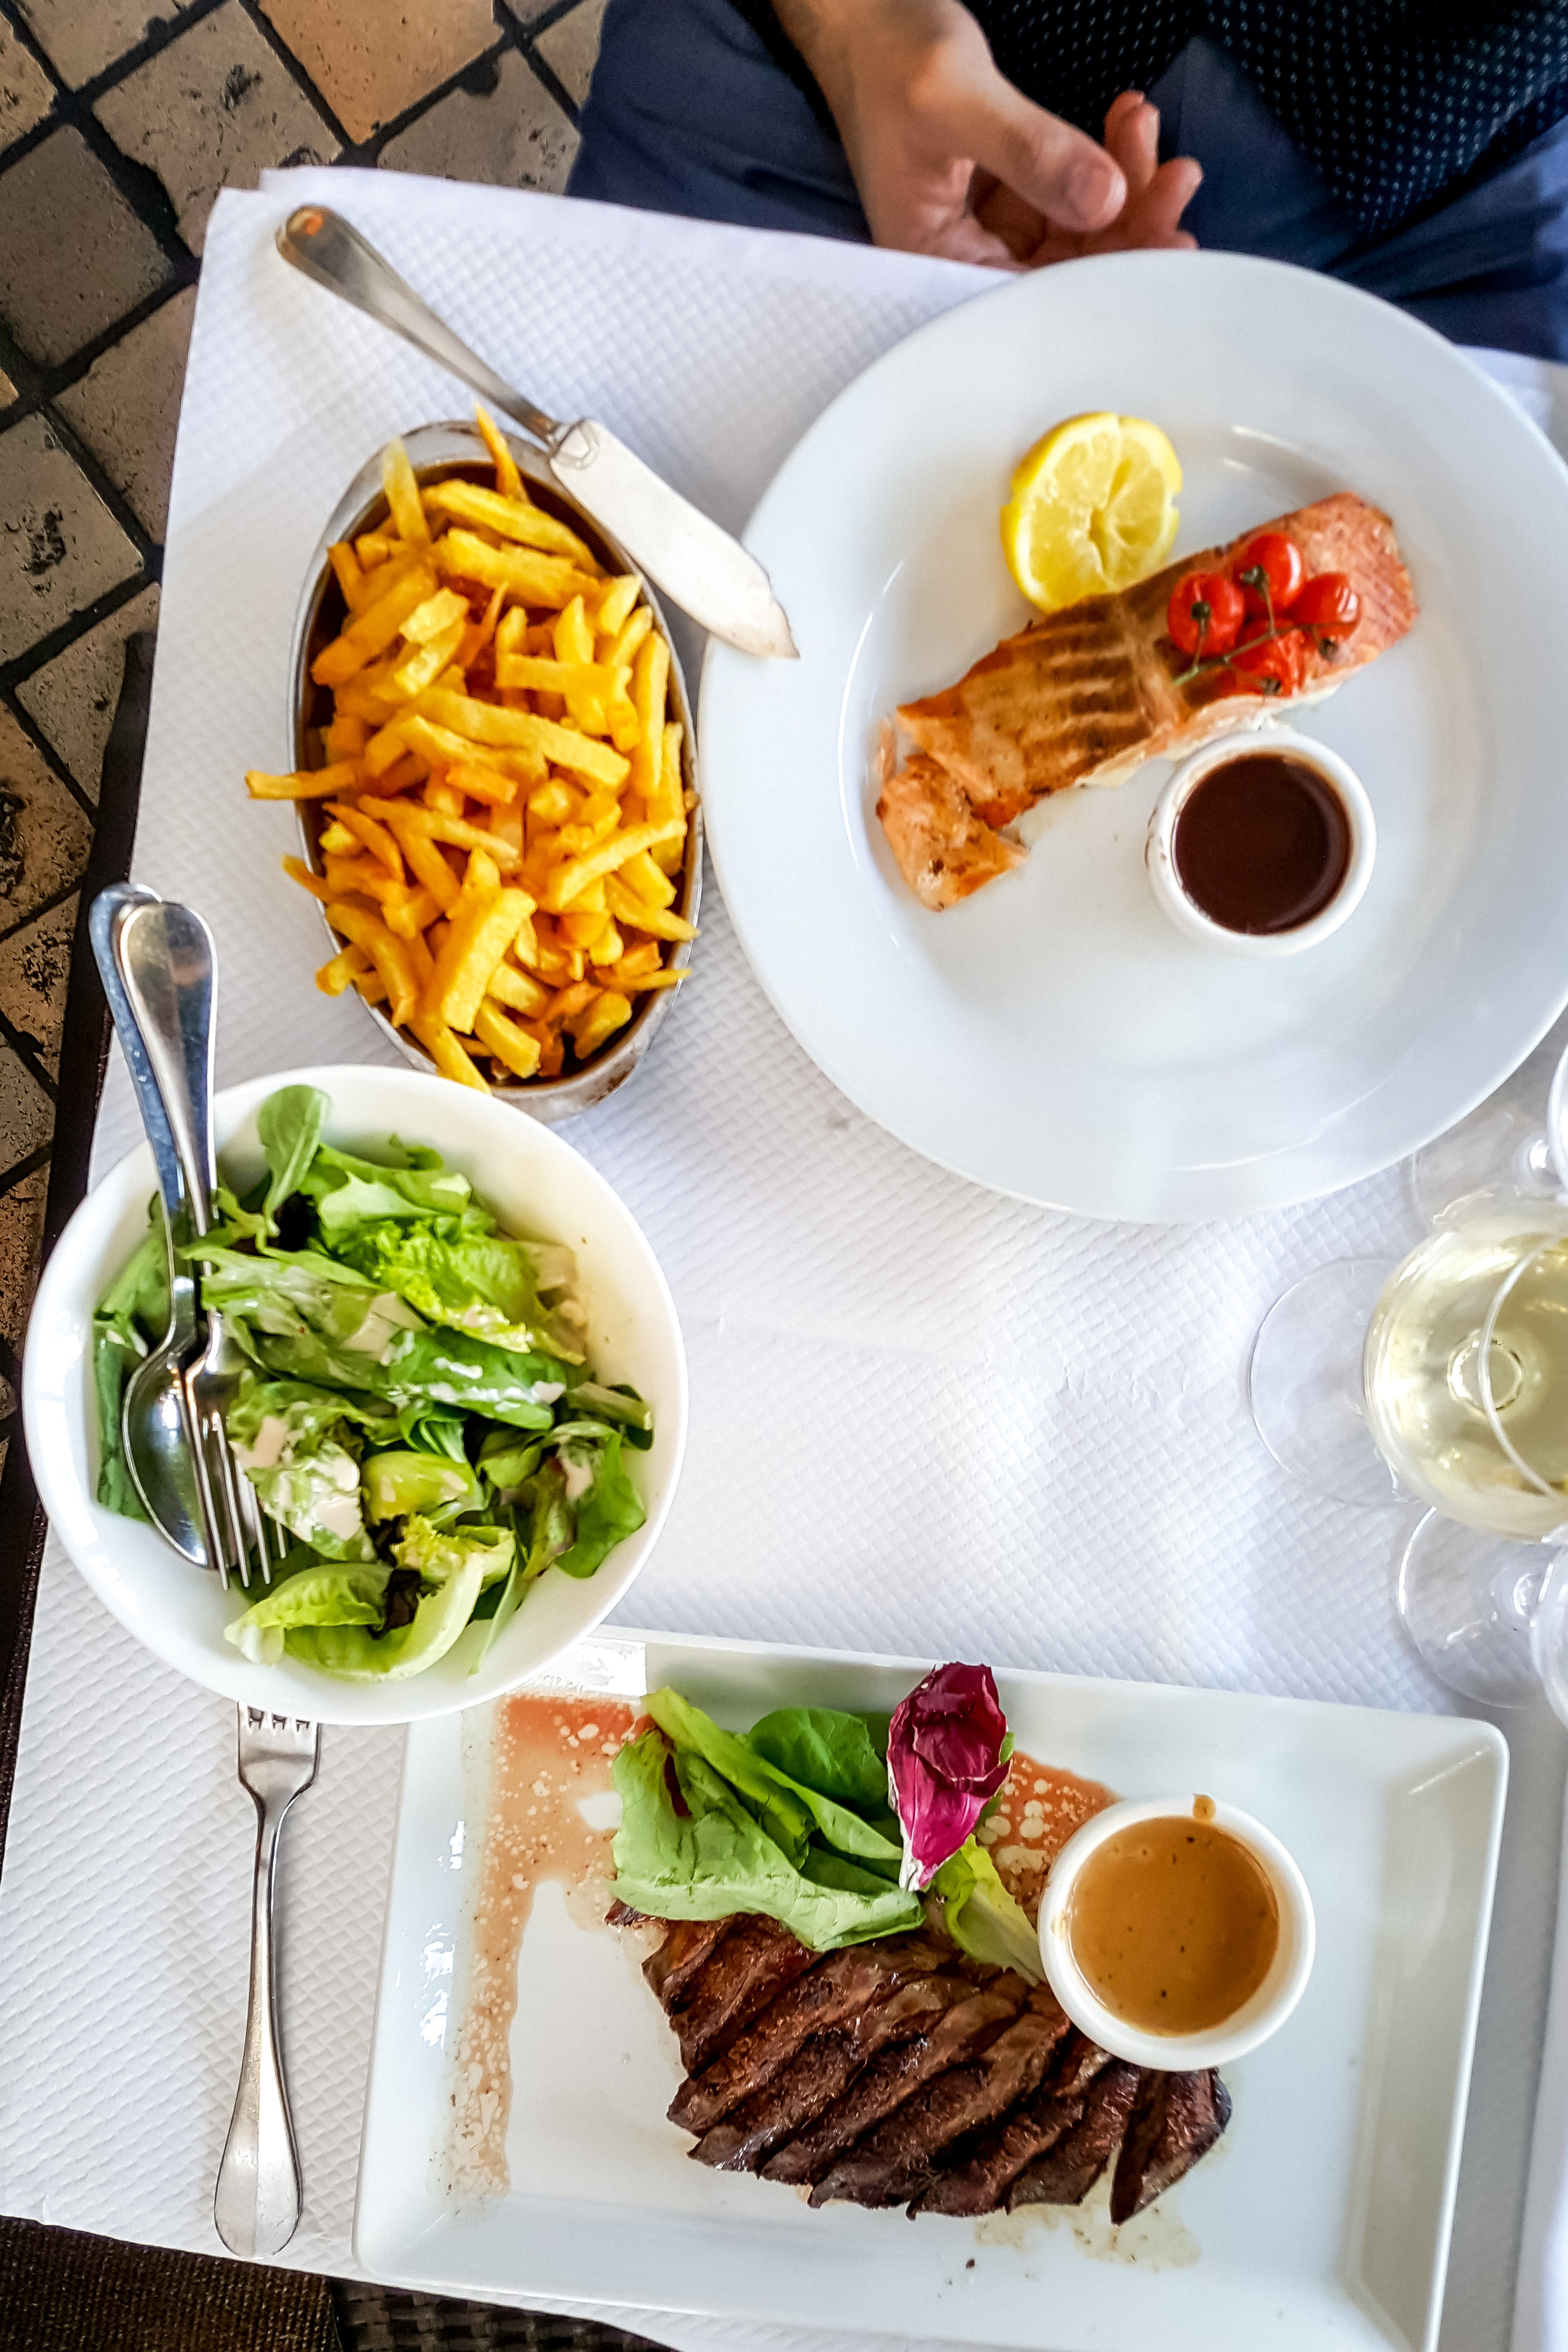 Lunch at Le Noailles